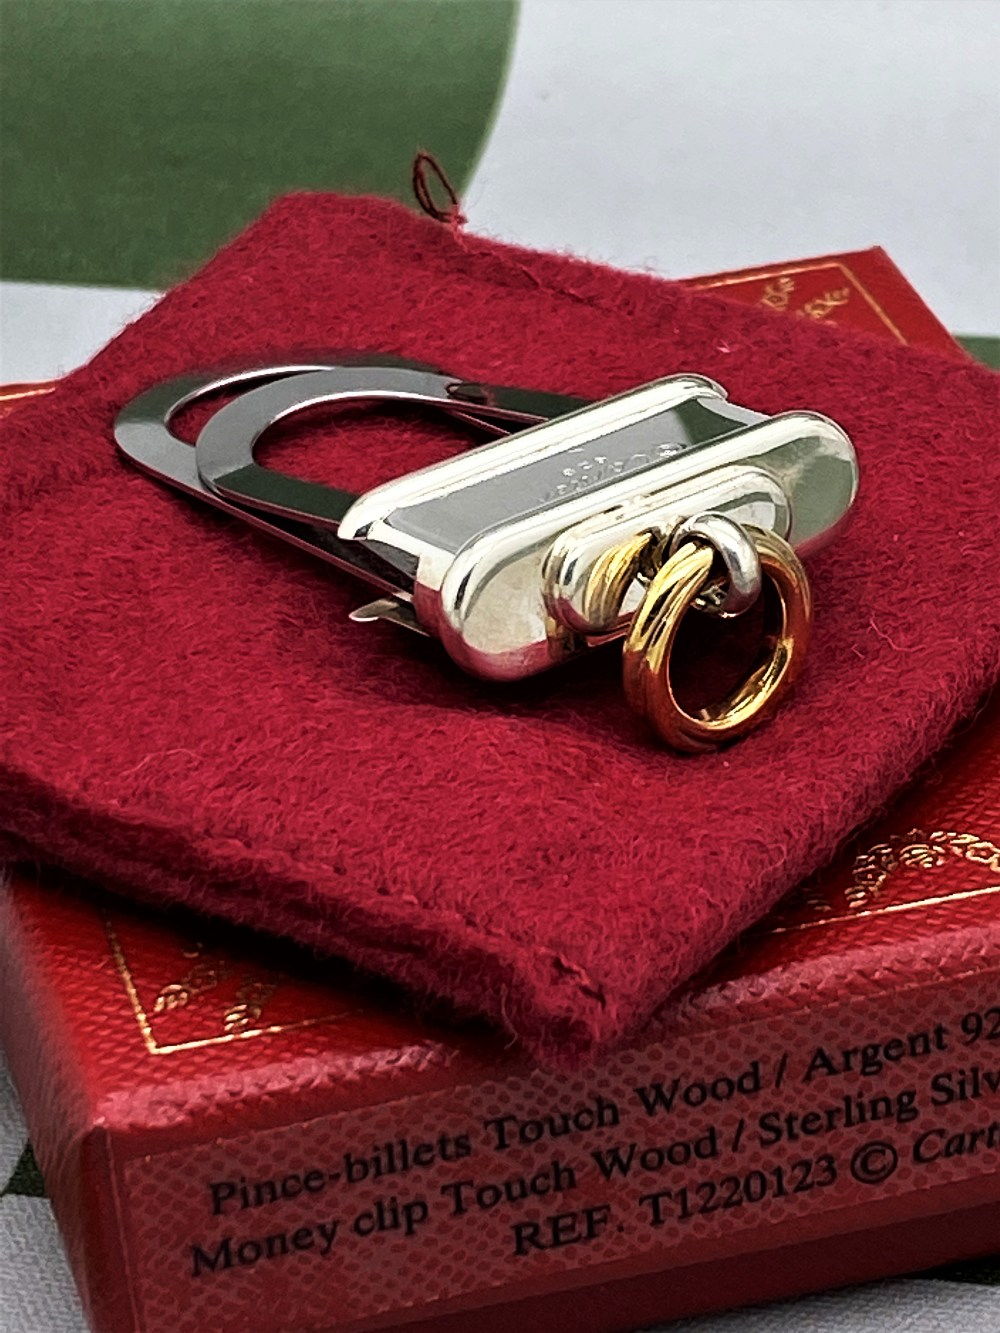 Cartier Paris -Extremely Rare Sterling Silver 925 & Gold Key Ring / Money Clip - Image 5 of 9